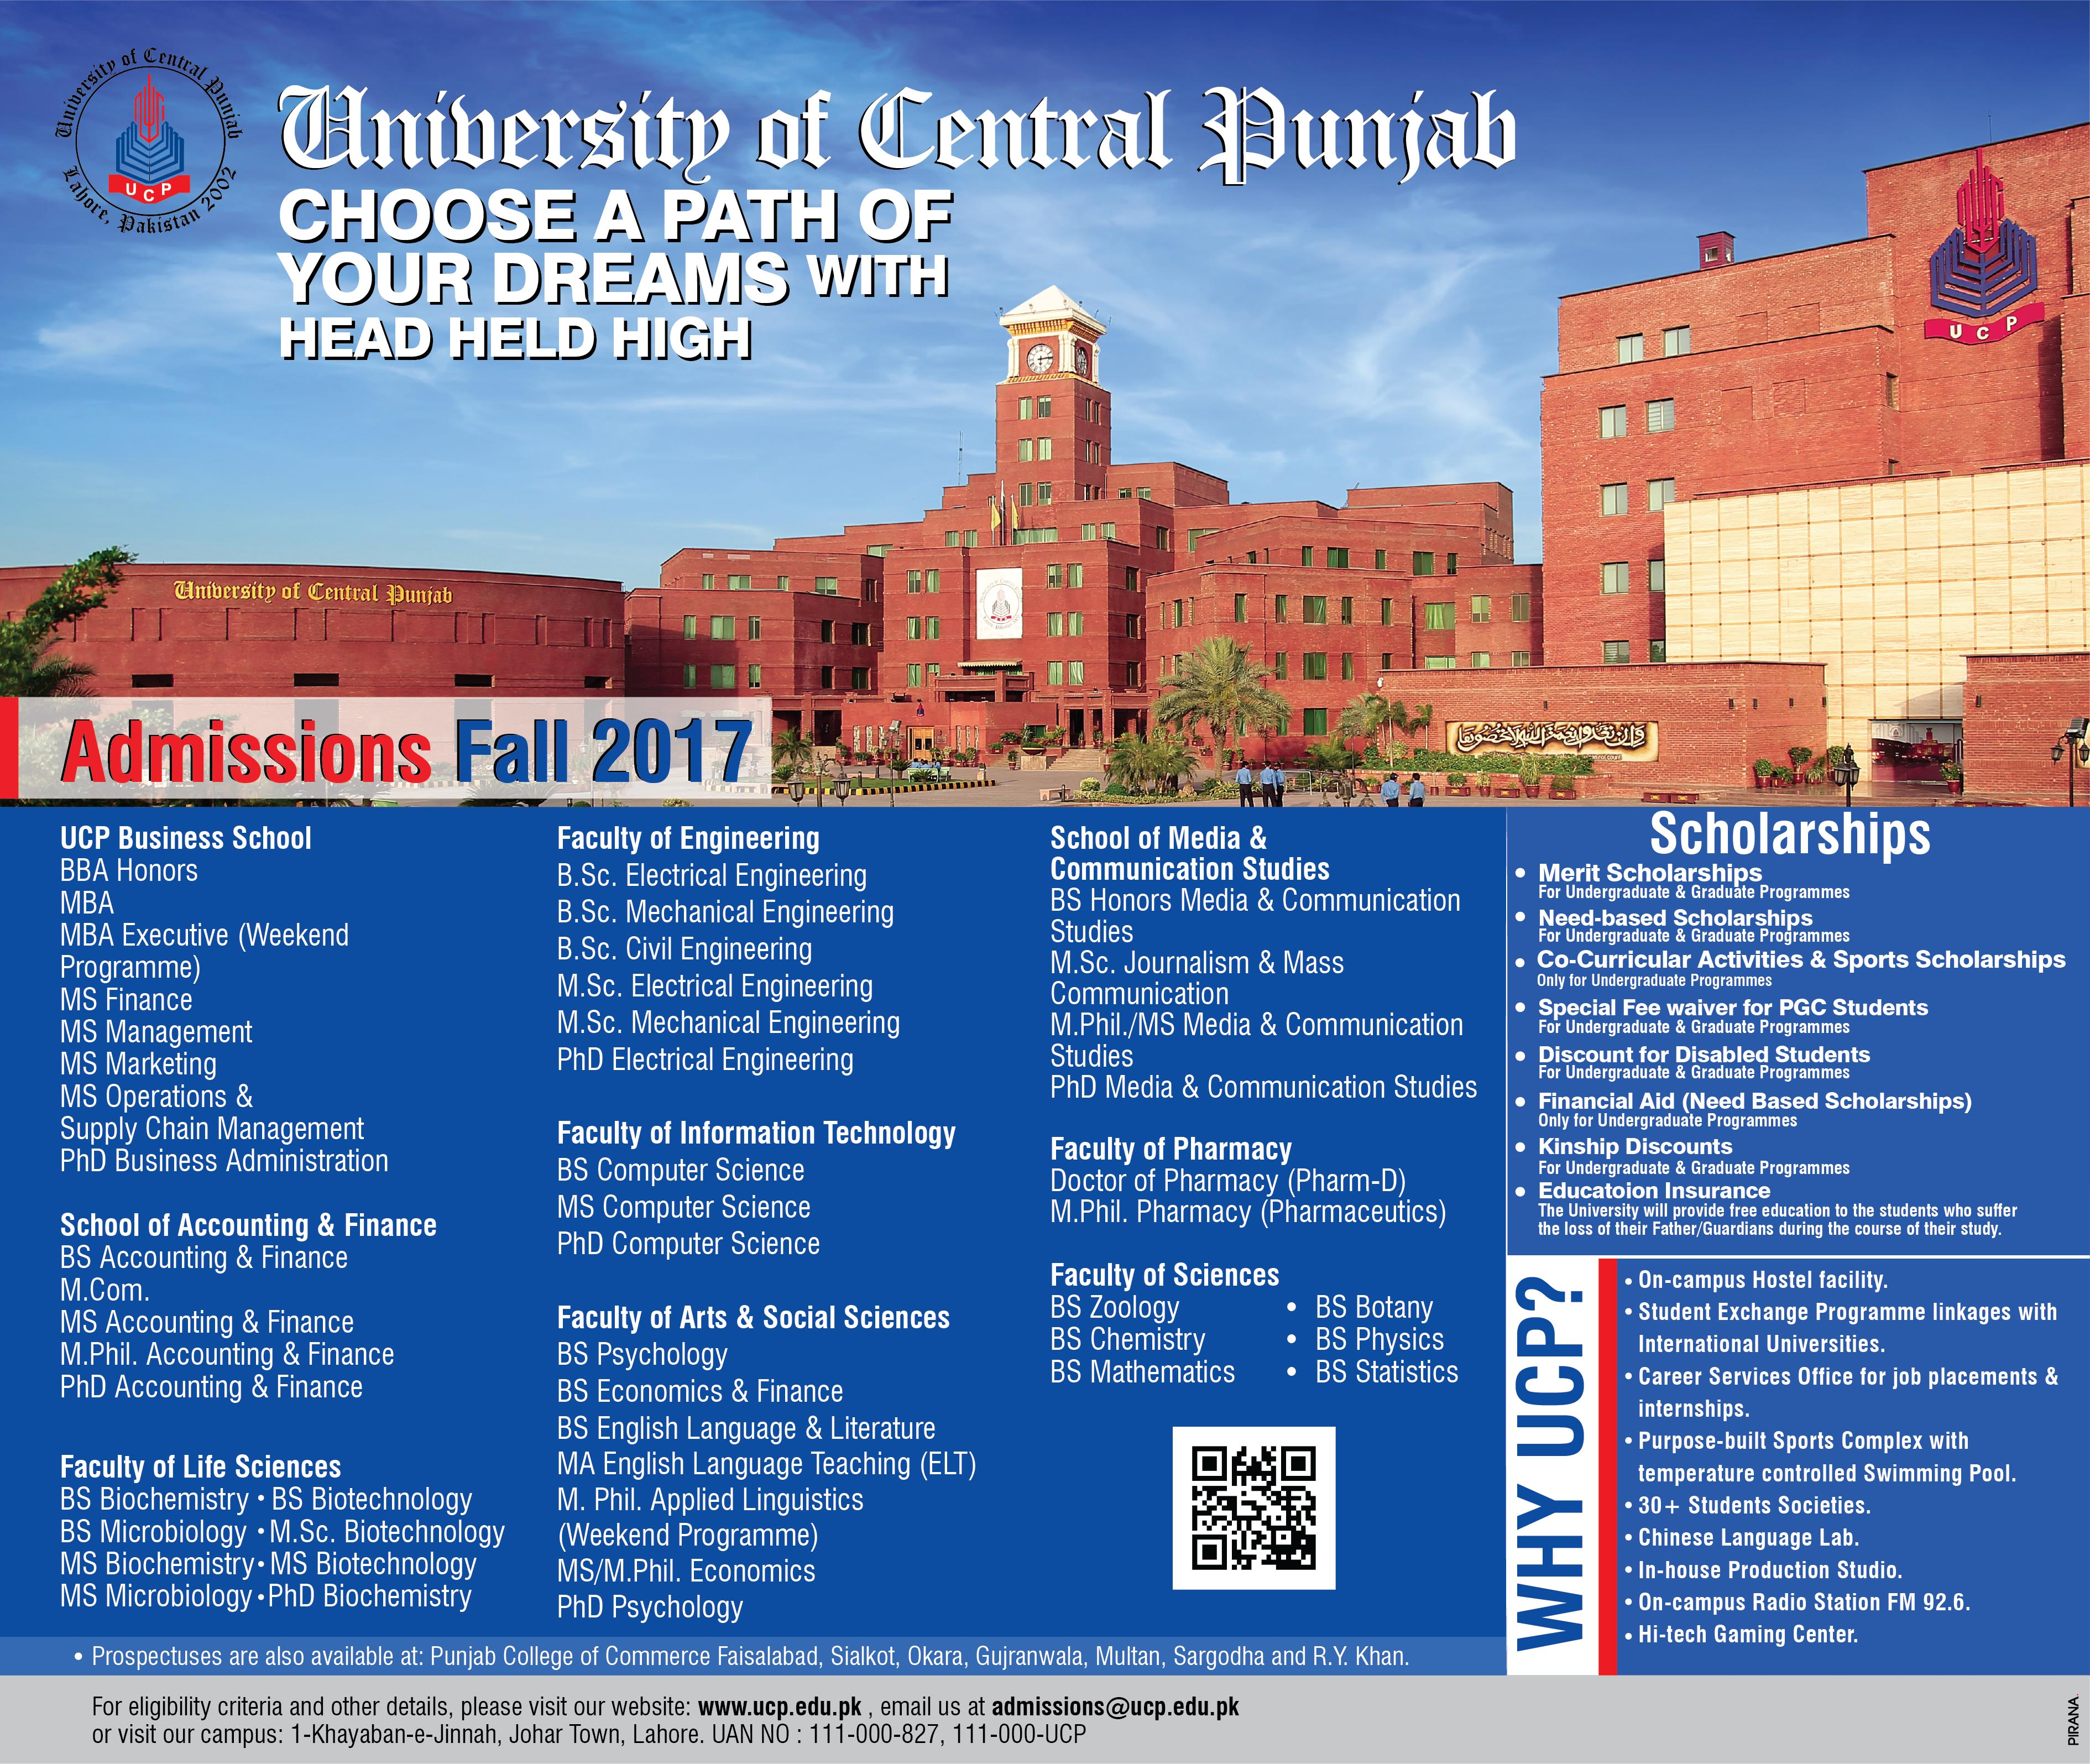 Air University (AU) Admissions Fall - 2017